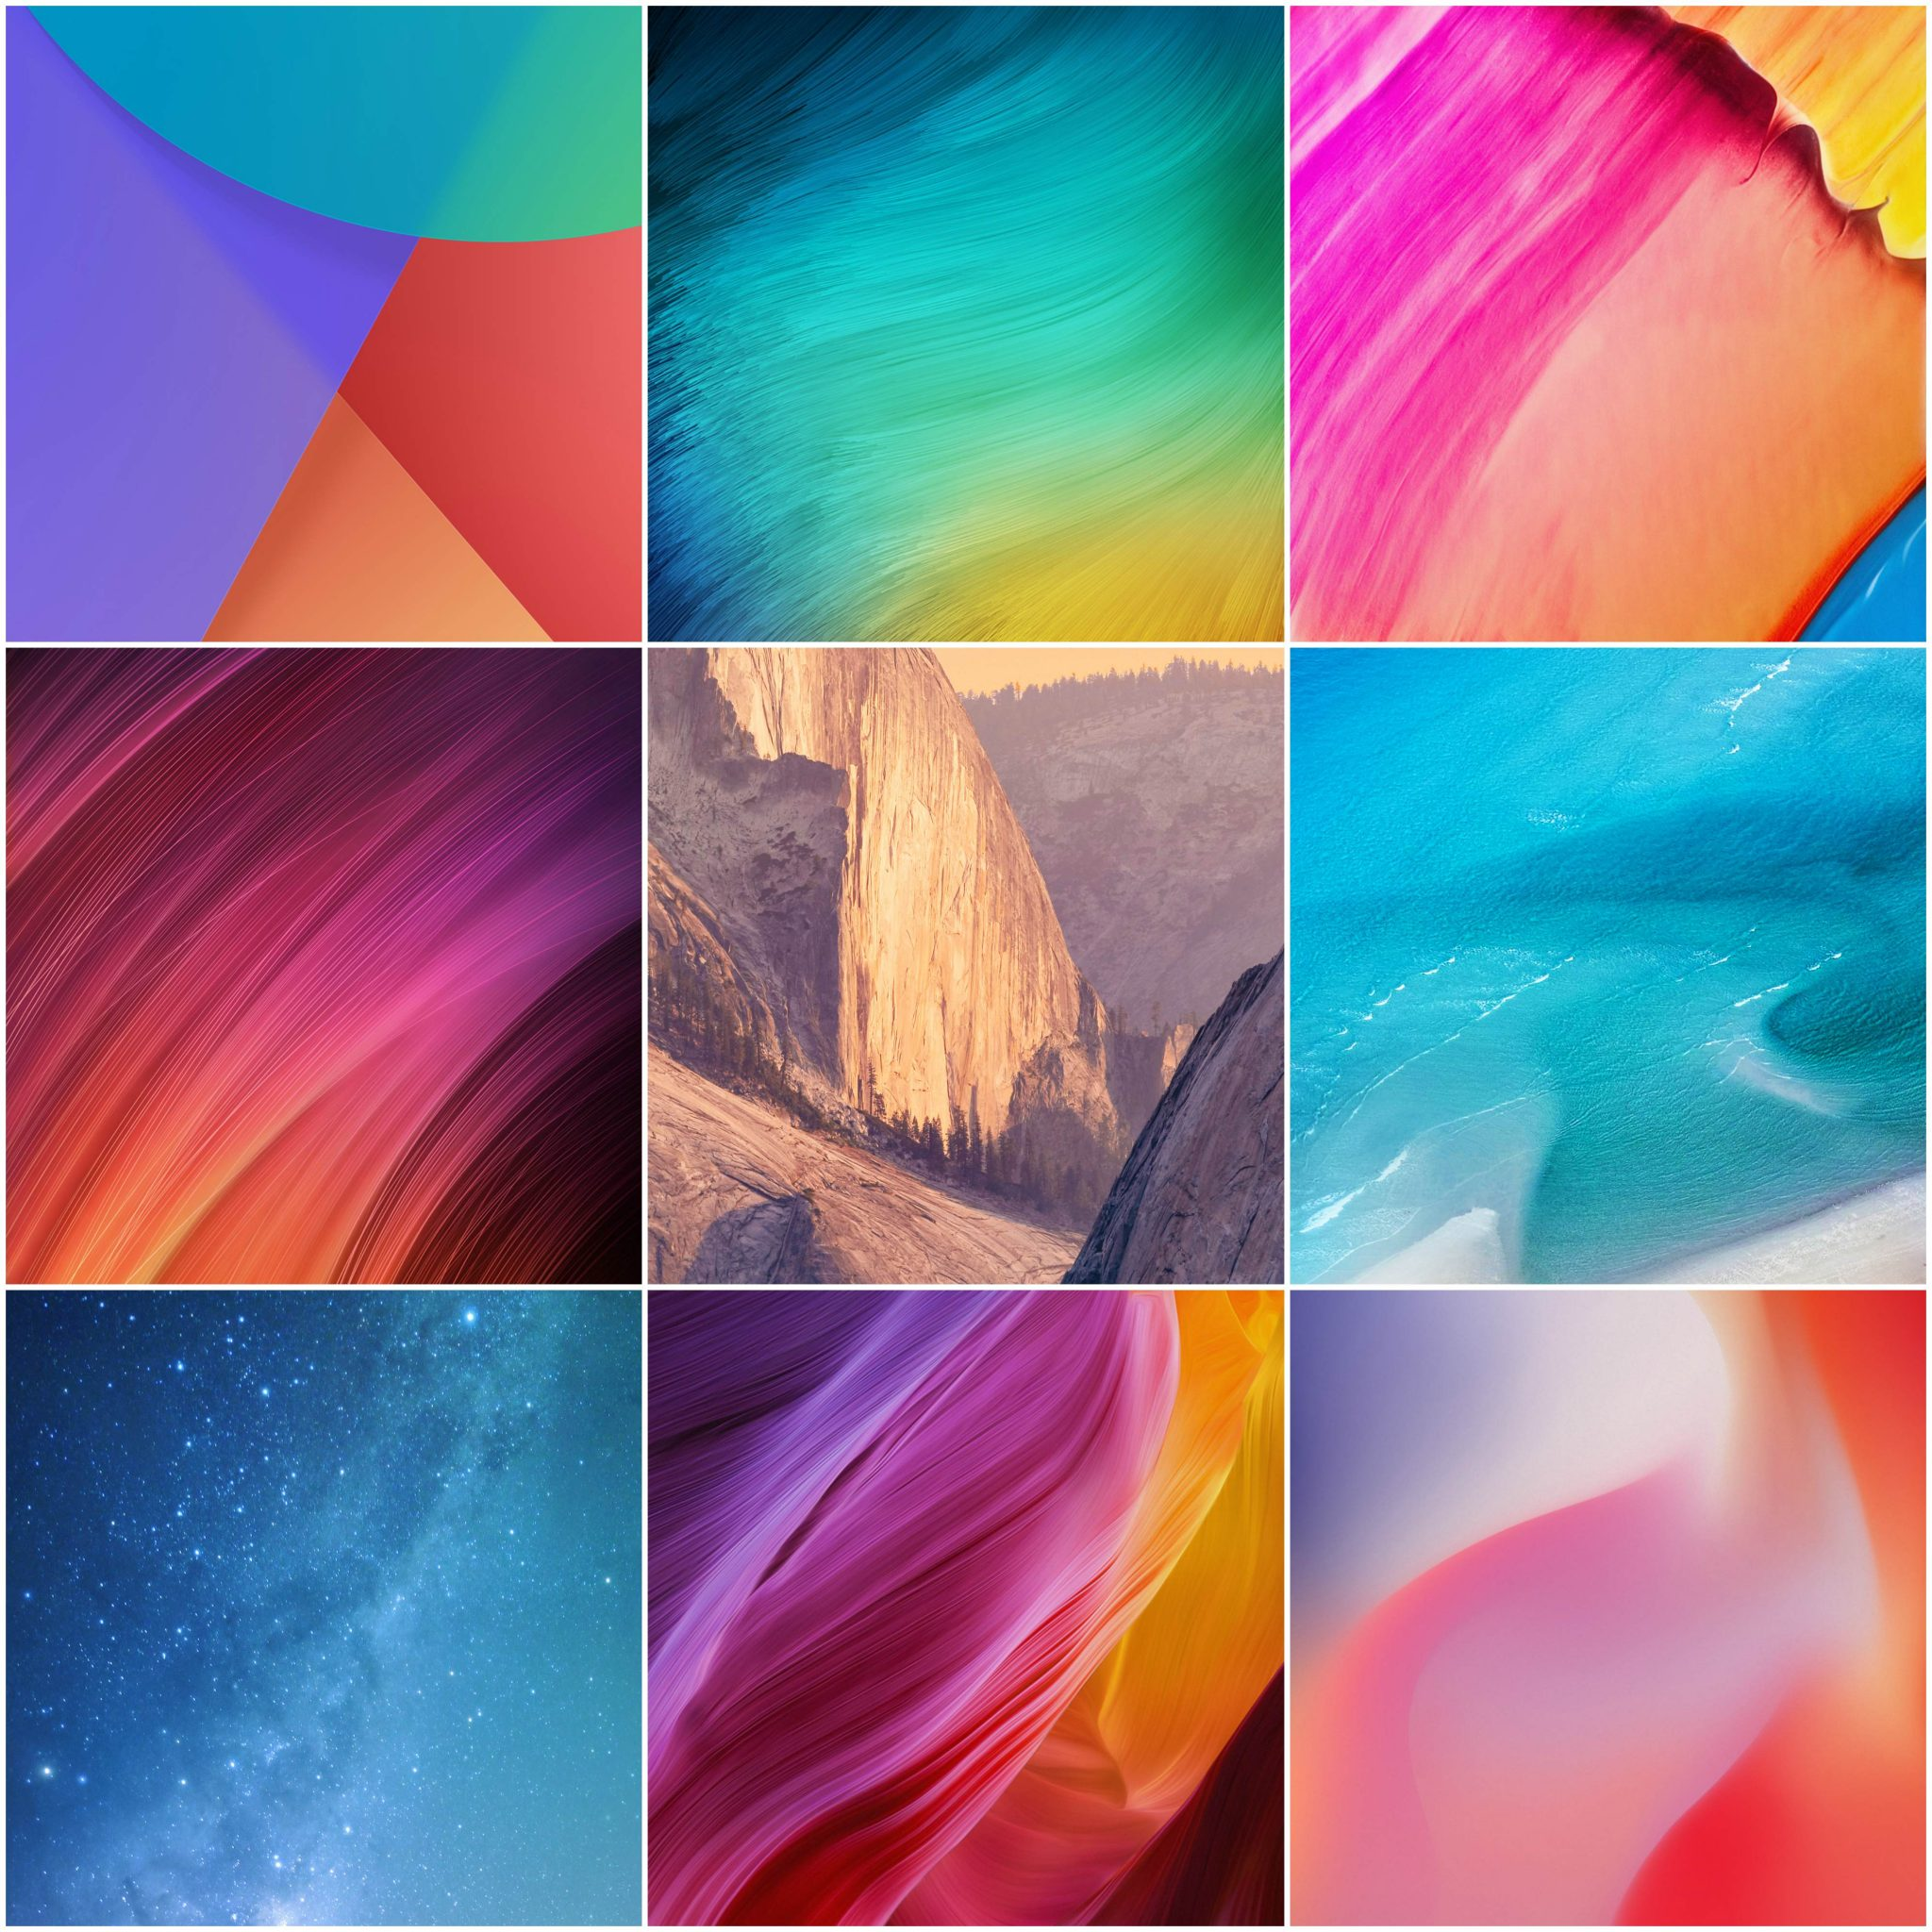 Download MIUI 9.5 stock wallpapers